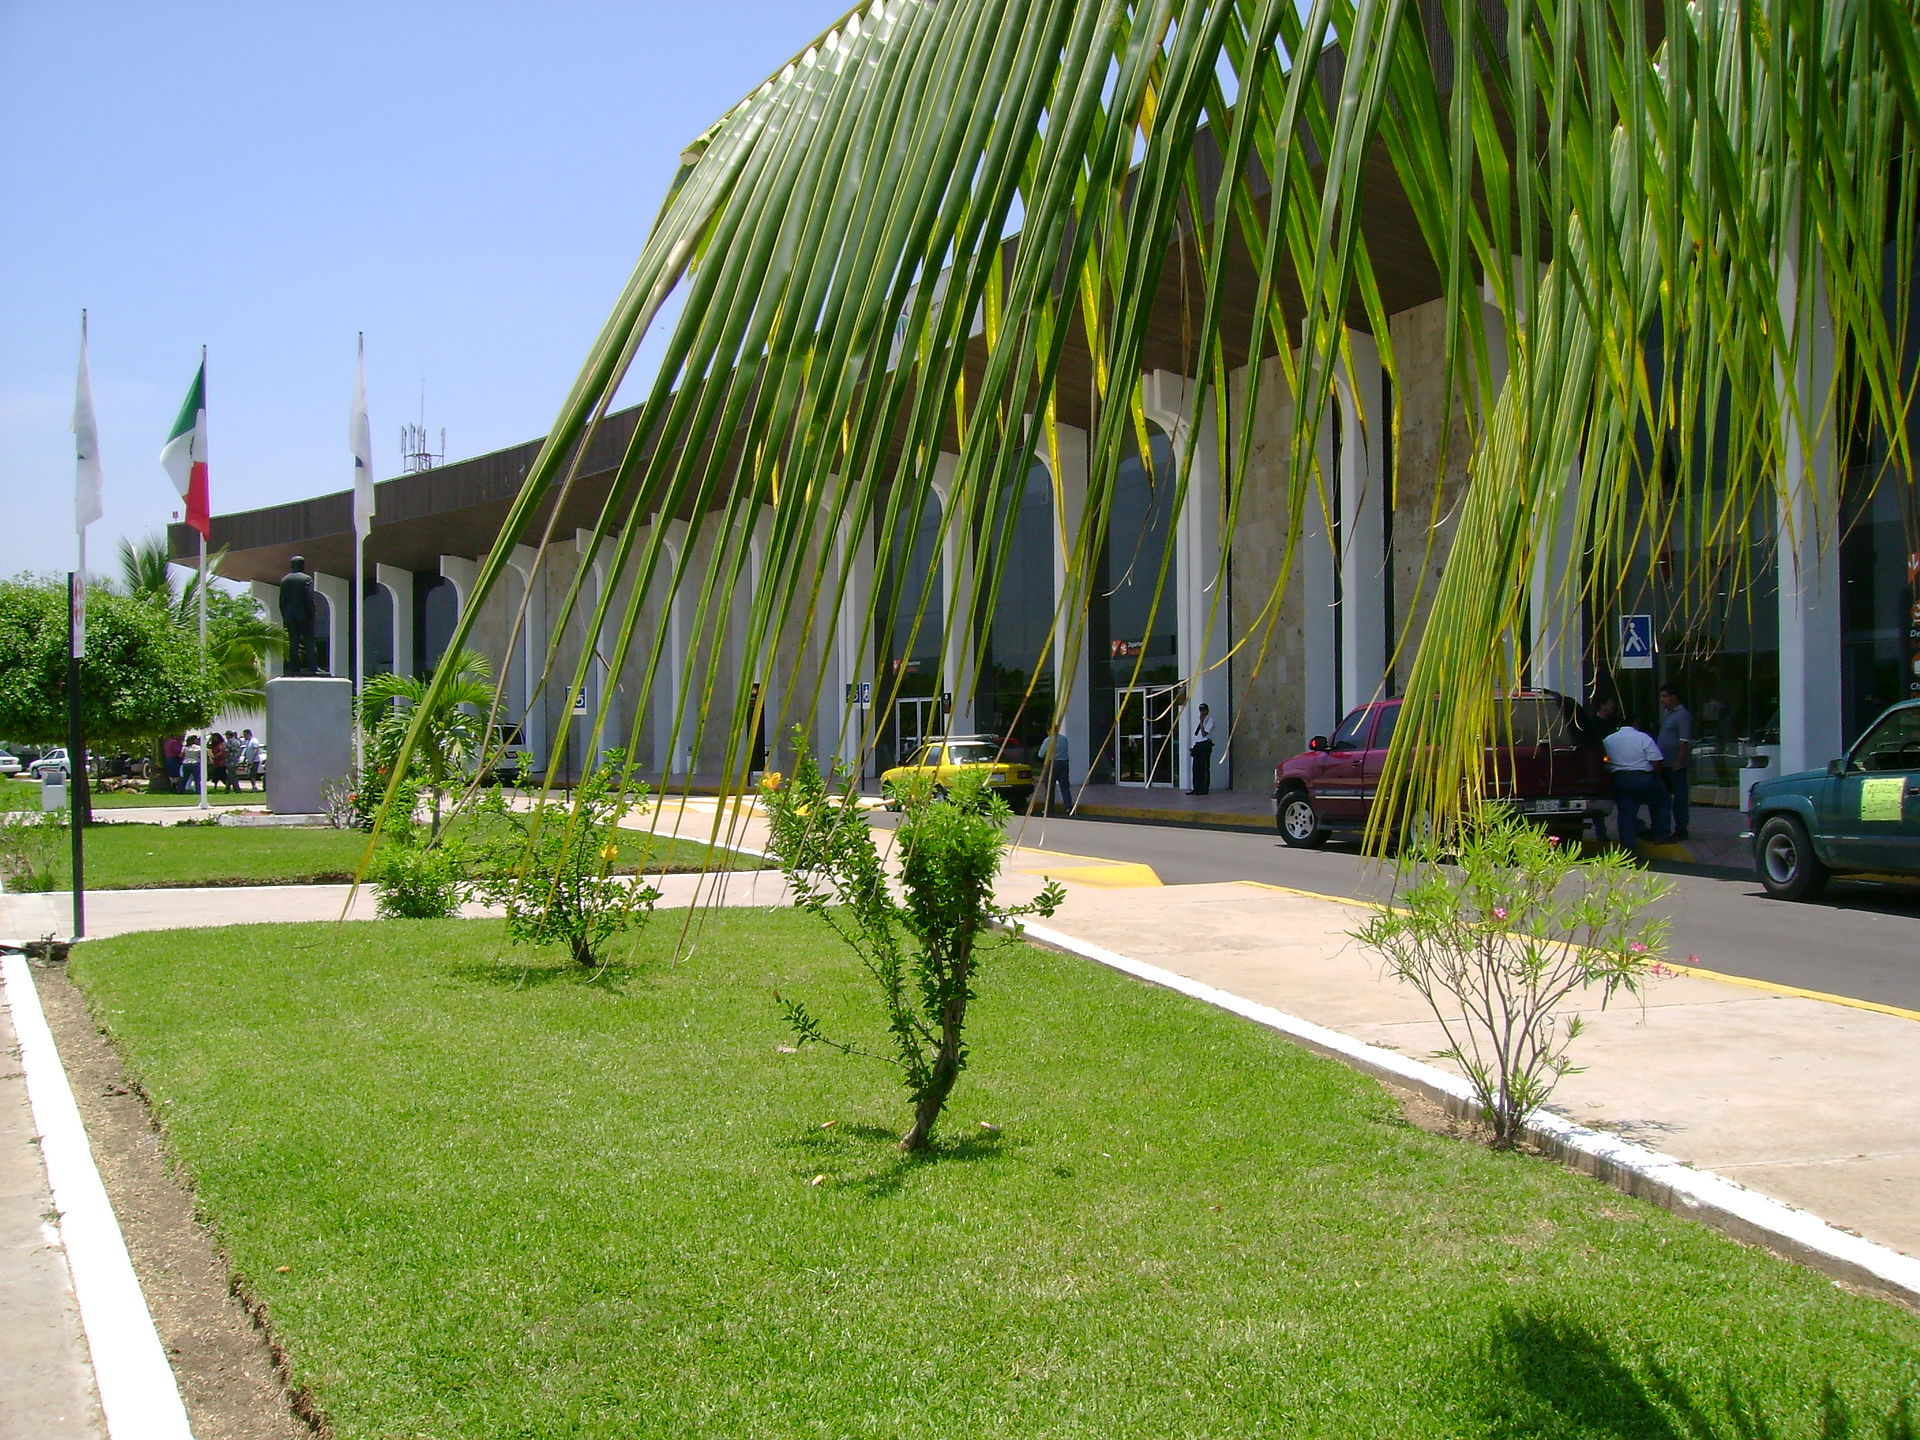 Playa De Oro International Airport Wikipedia